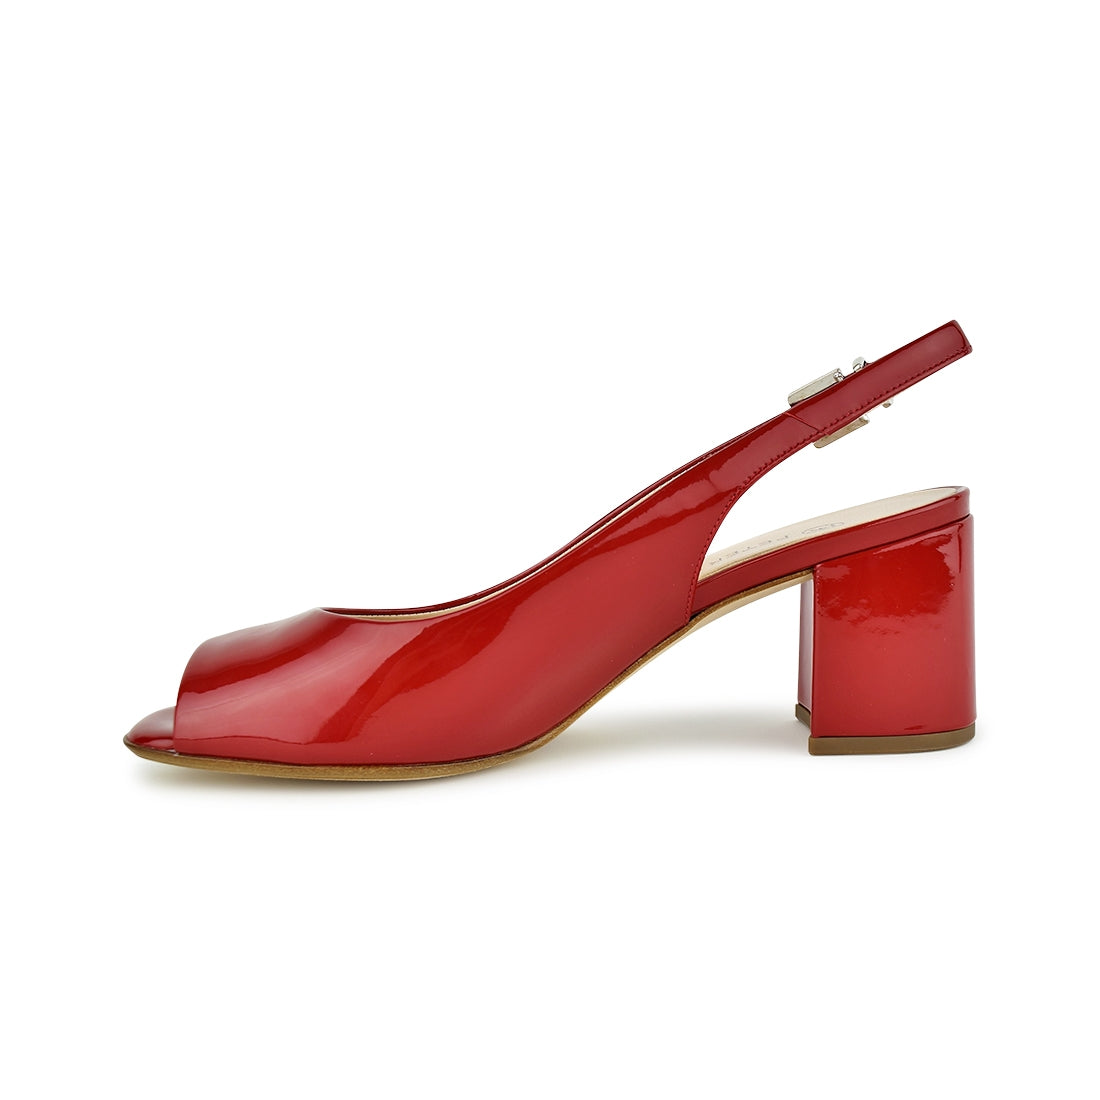 MALLY - Peter Kaiser Sandal Red Patent